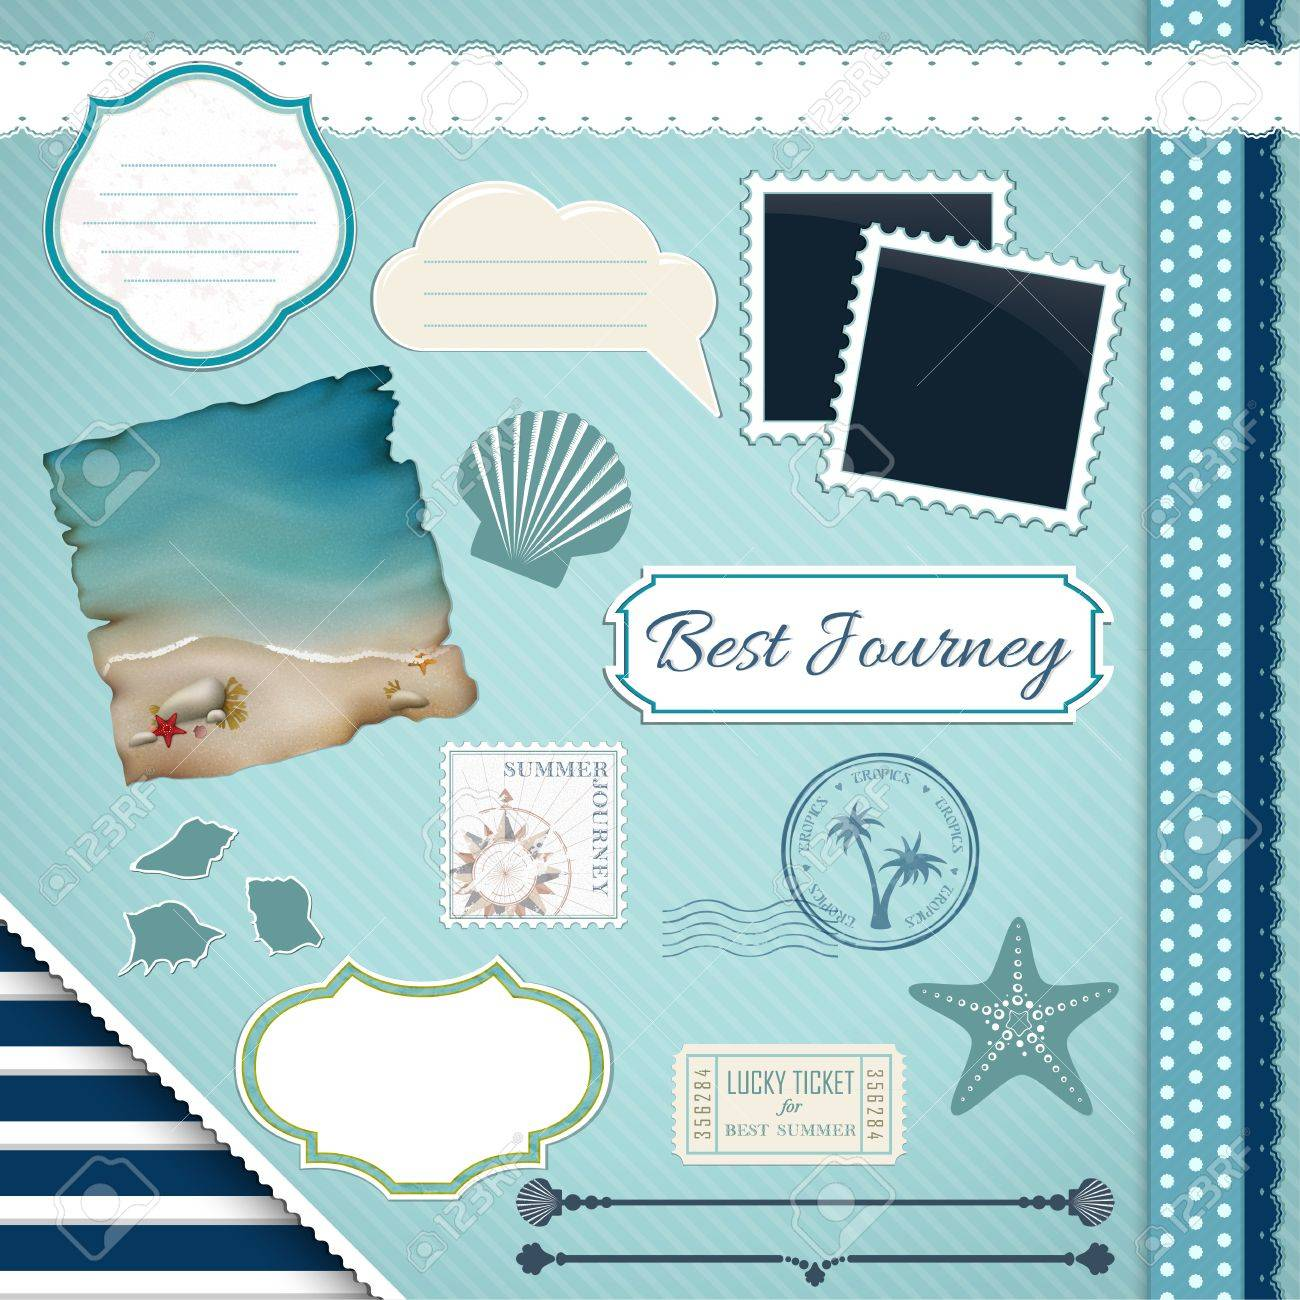 Scrapbooking Set Summer journey - frames, ribbons, dividers, notes and decorations - 18685674